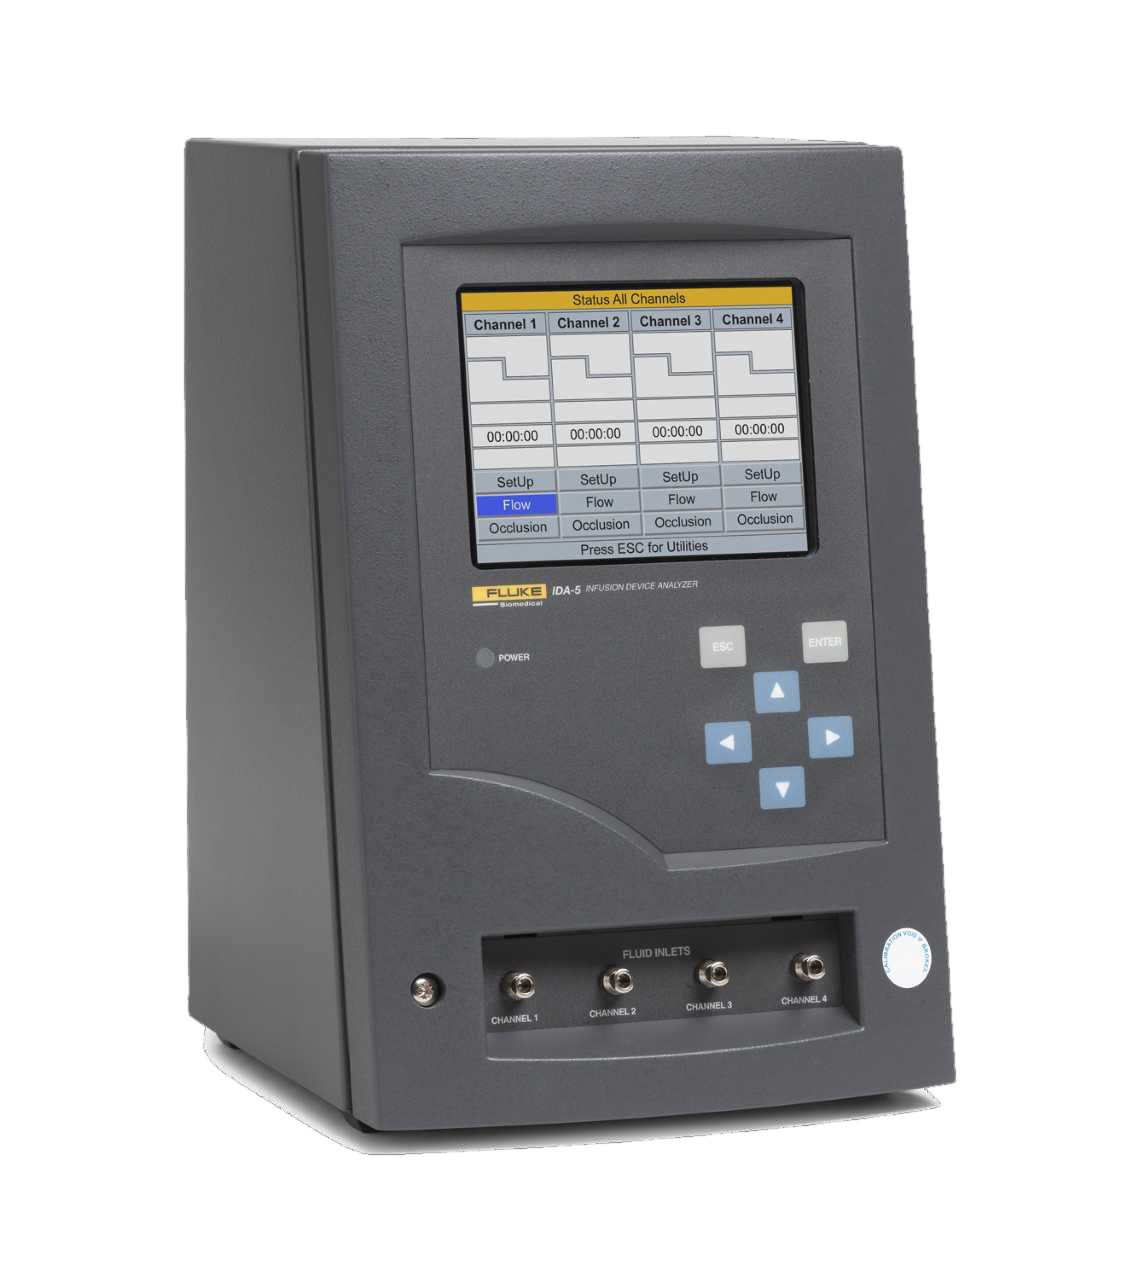 IDA-5 Infusion Pump Tester and Analyzer